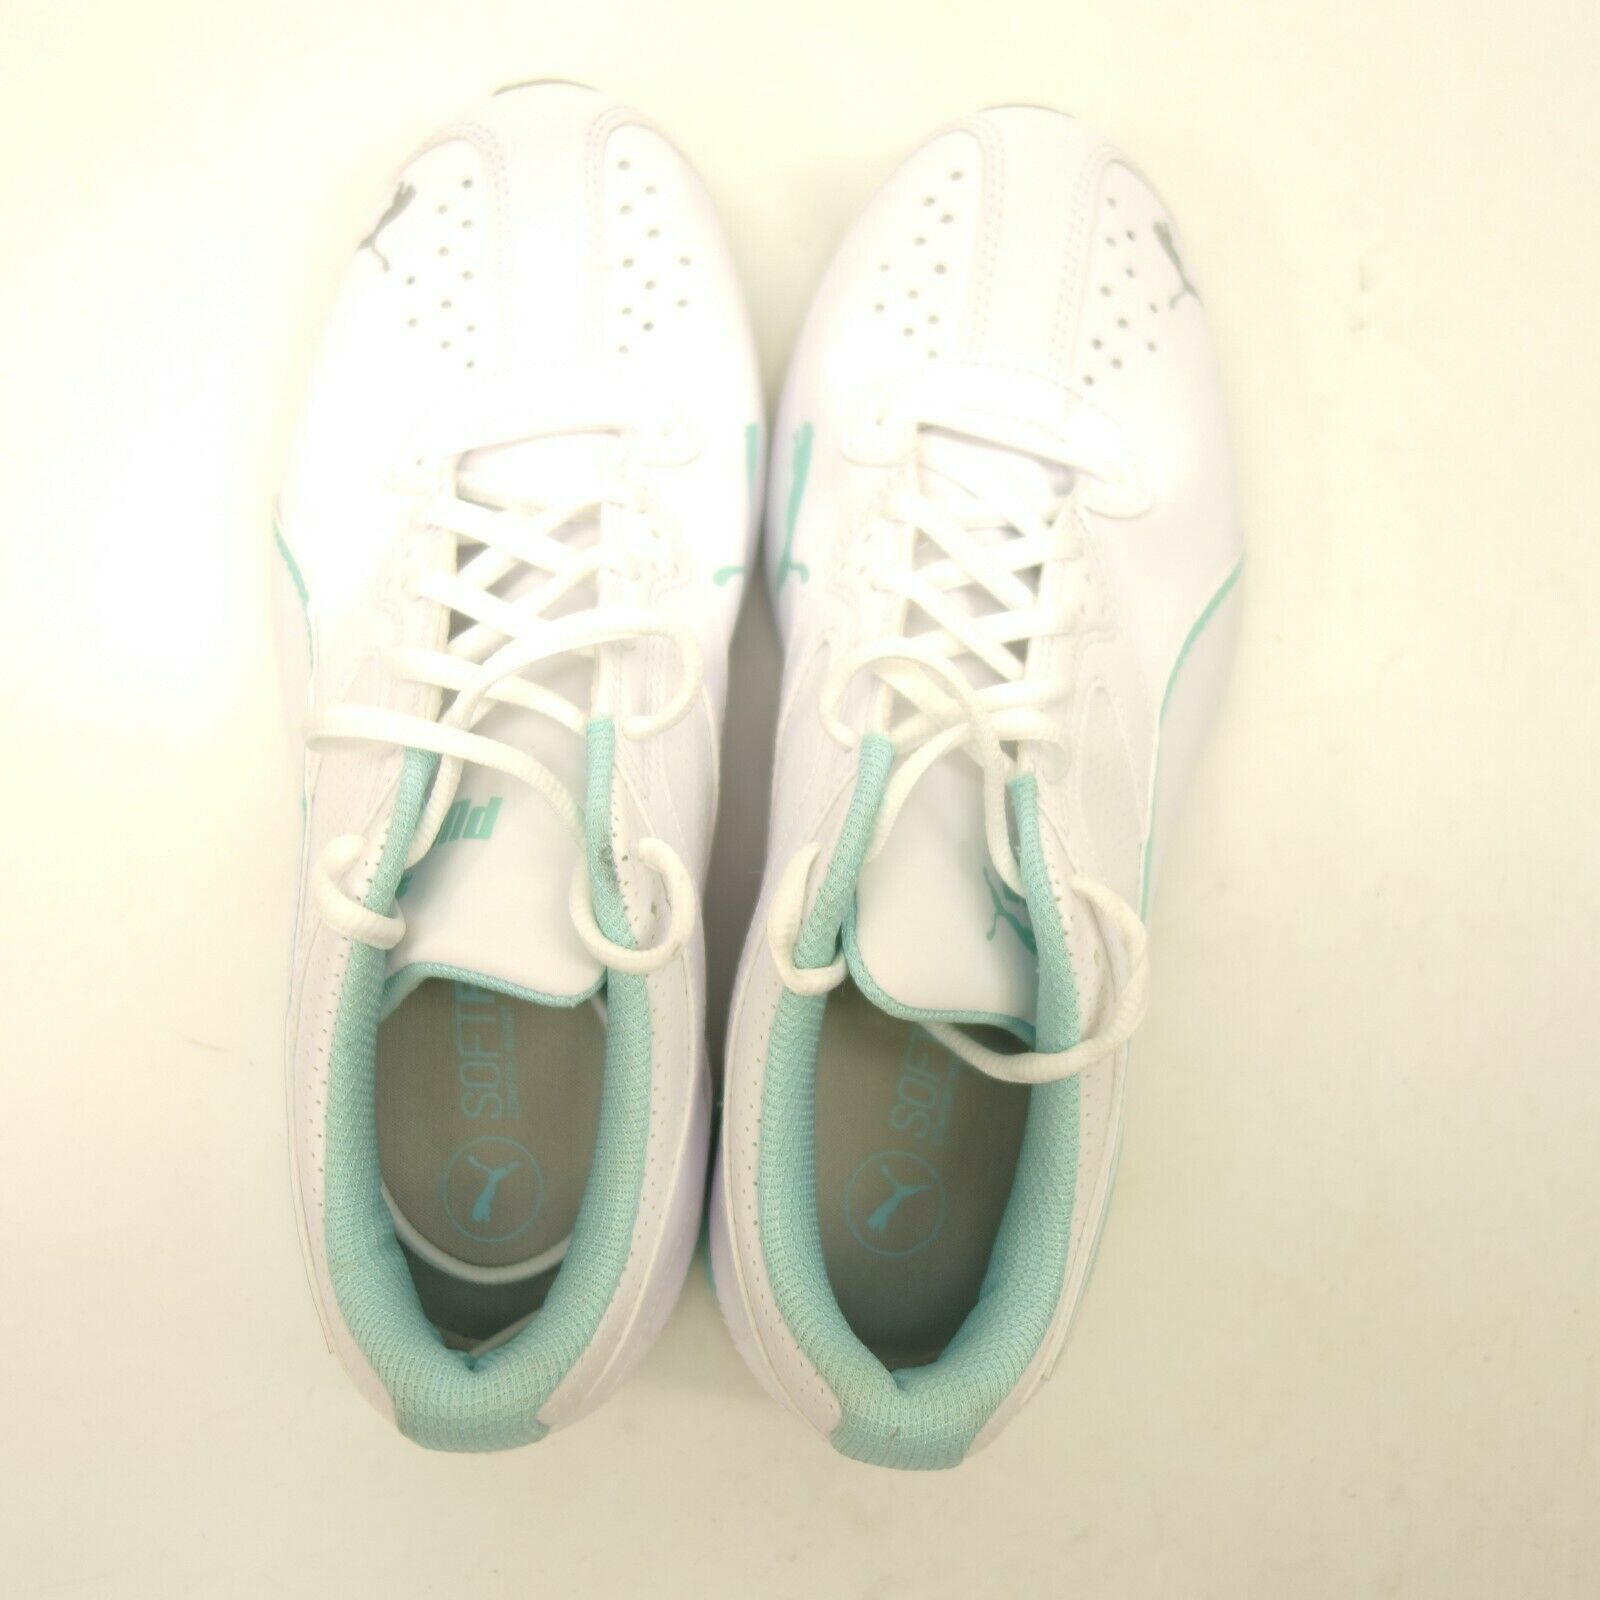 Puma Womens Size 9.5 White White White Leather Lace Up Running Trail Sneaker New shoes 0f0c85